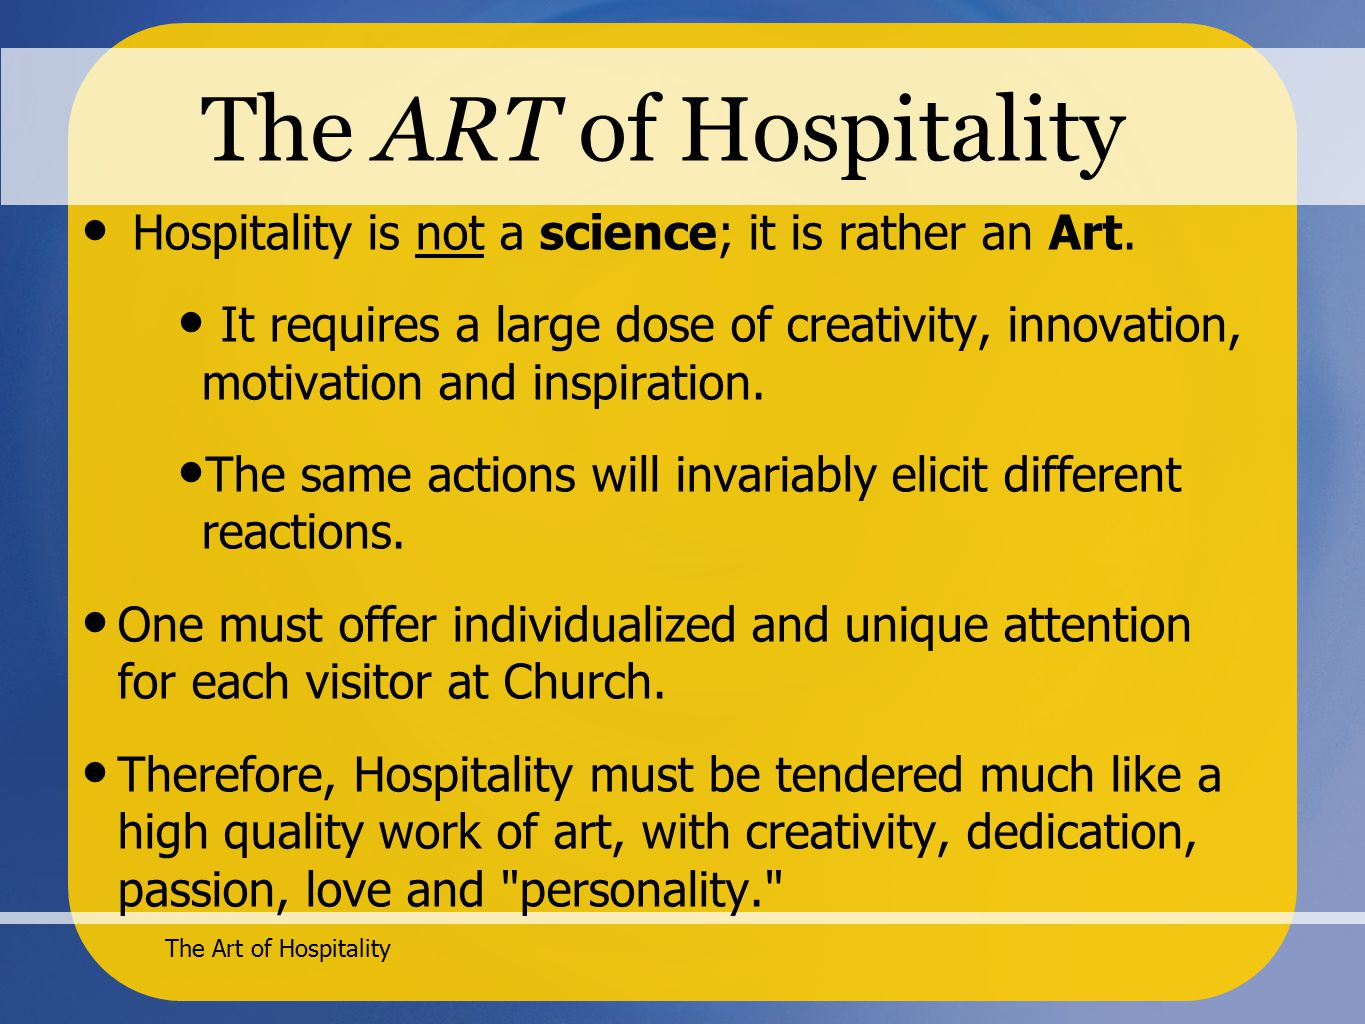 The Art of Hospitality Tasks of Ushers During Mass 4.